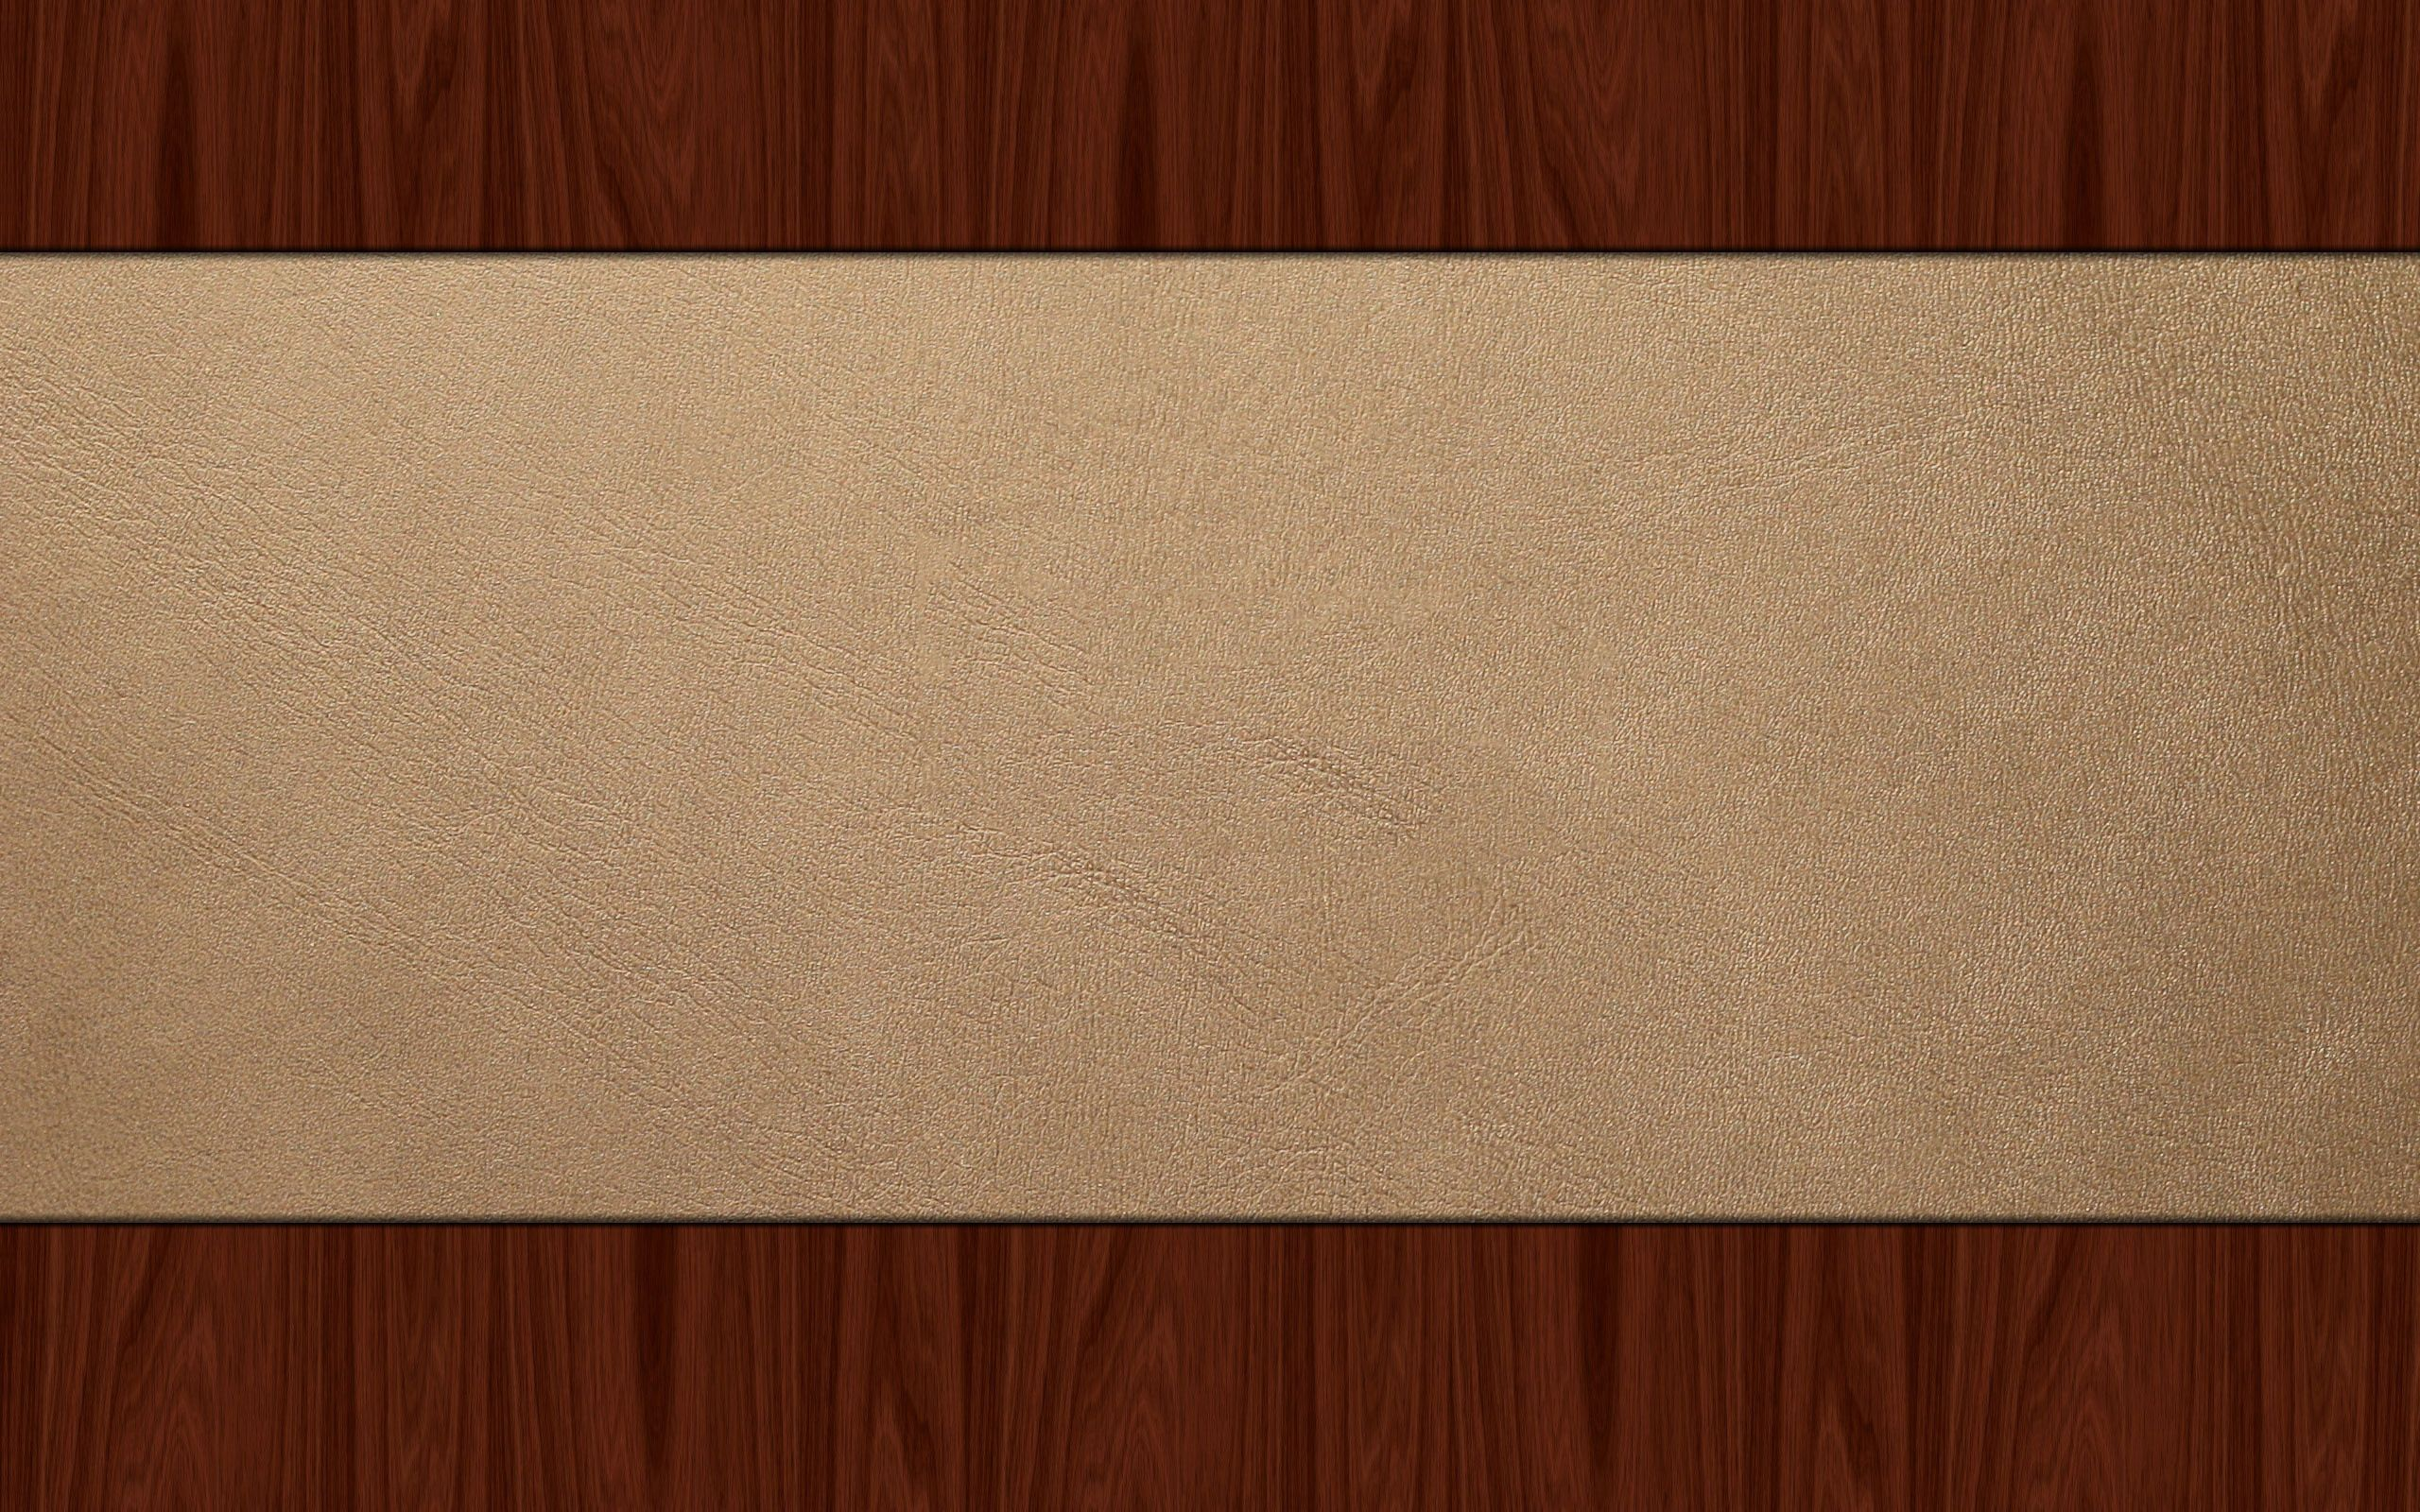 134336 download wallpaper Textures, Wood, Wooden, Texture, Lines, Surface screensavers and pictures for free